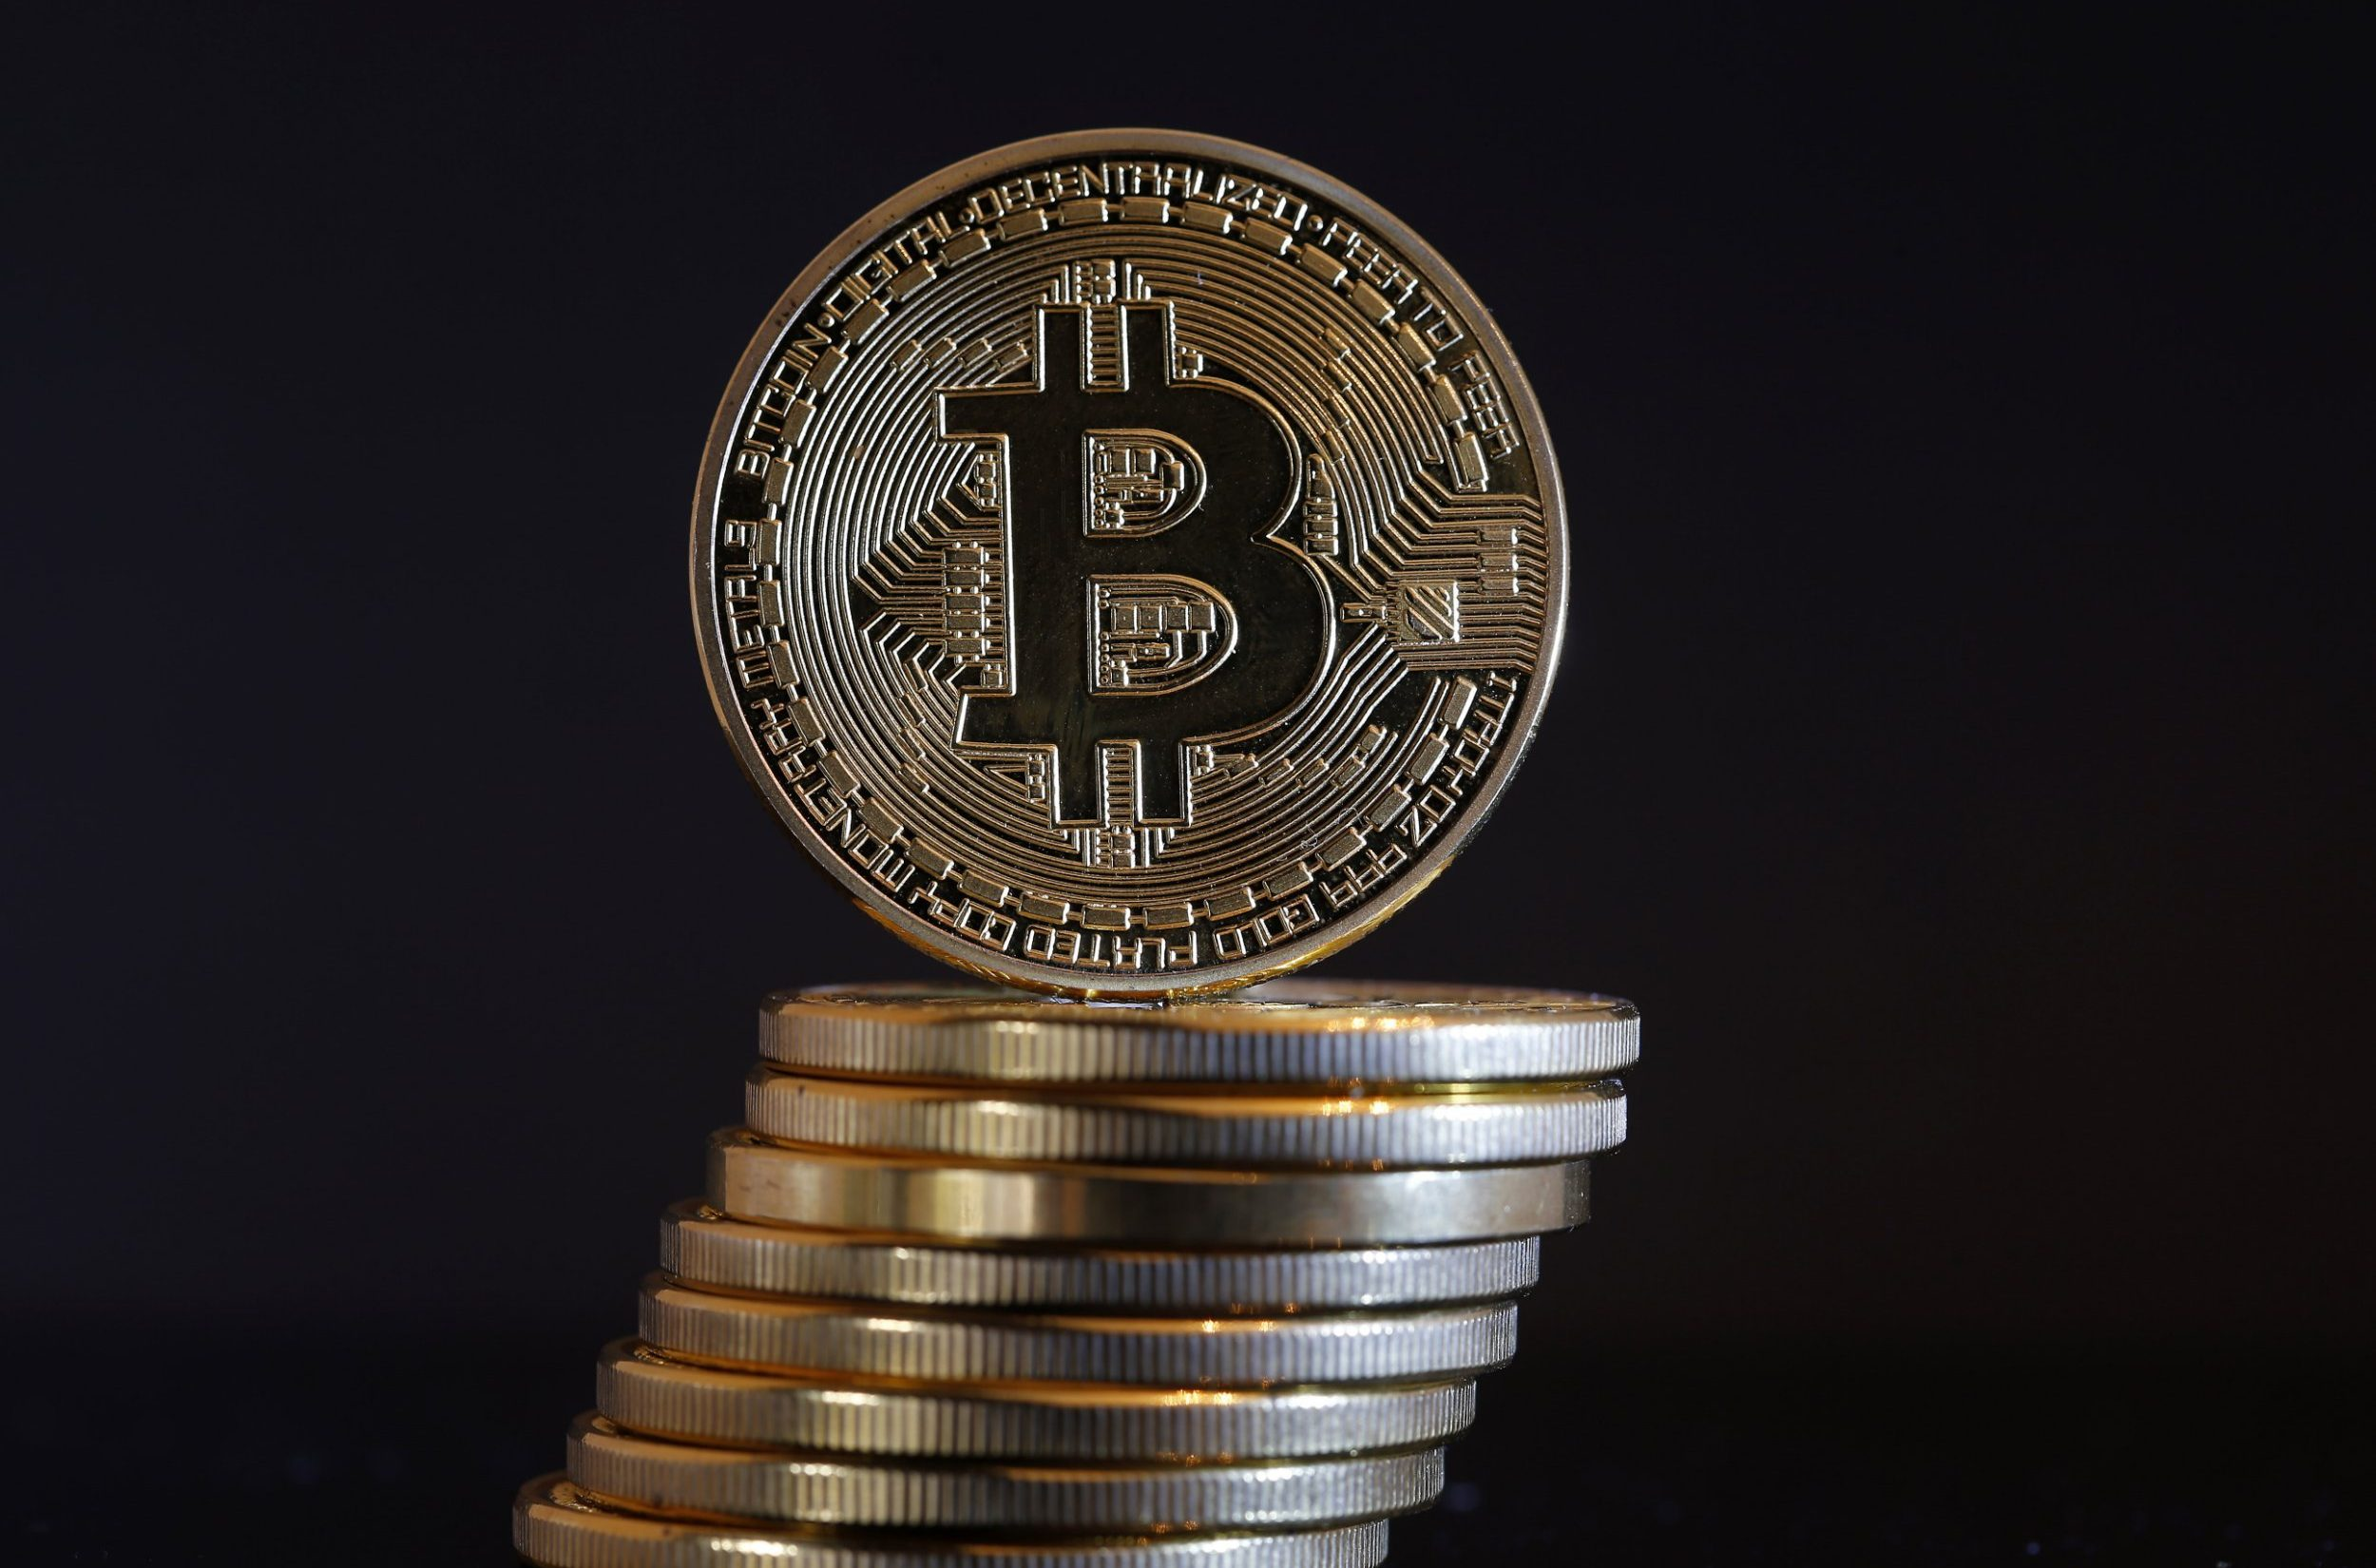 PARIS, FRANCE - NOVEMBER 19: In this photo illustration, a visual representation of the Bitcoin Digital Cryptocurrency is displayed on November 19, 2018 in Paris, France. Bitcoin is an electronic money that has seen an incredible increase in 2017, its price has risen up to 20,000 euros, but currently its price has dropped around 5,000 euros. (Photo Illustration by Chesnot/Getty Images)